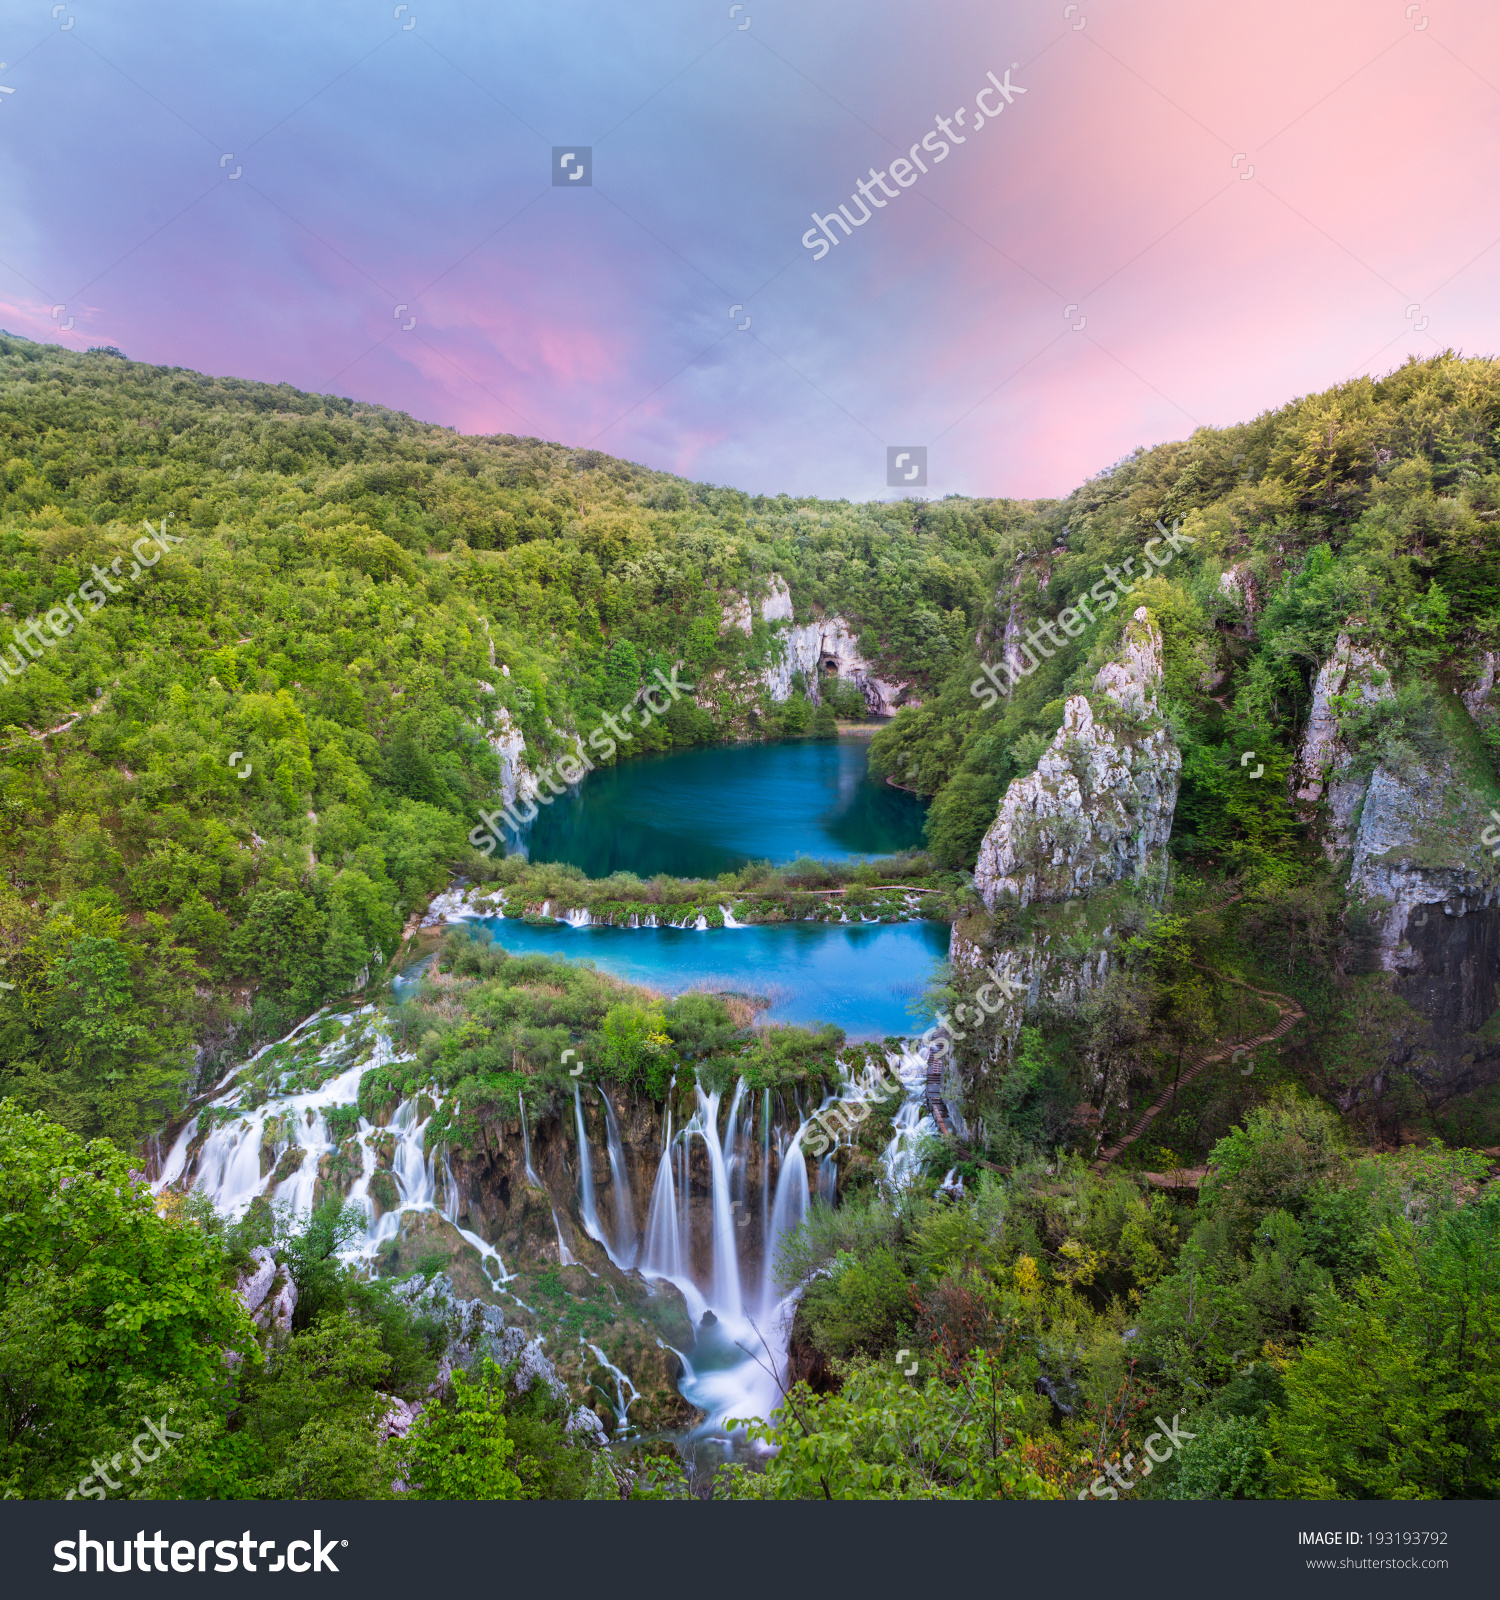 National Park clipart forestry Plitvice Download #6 Park